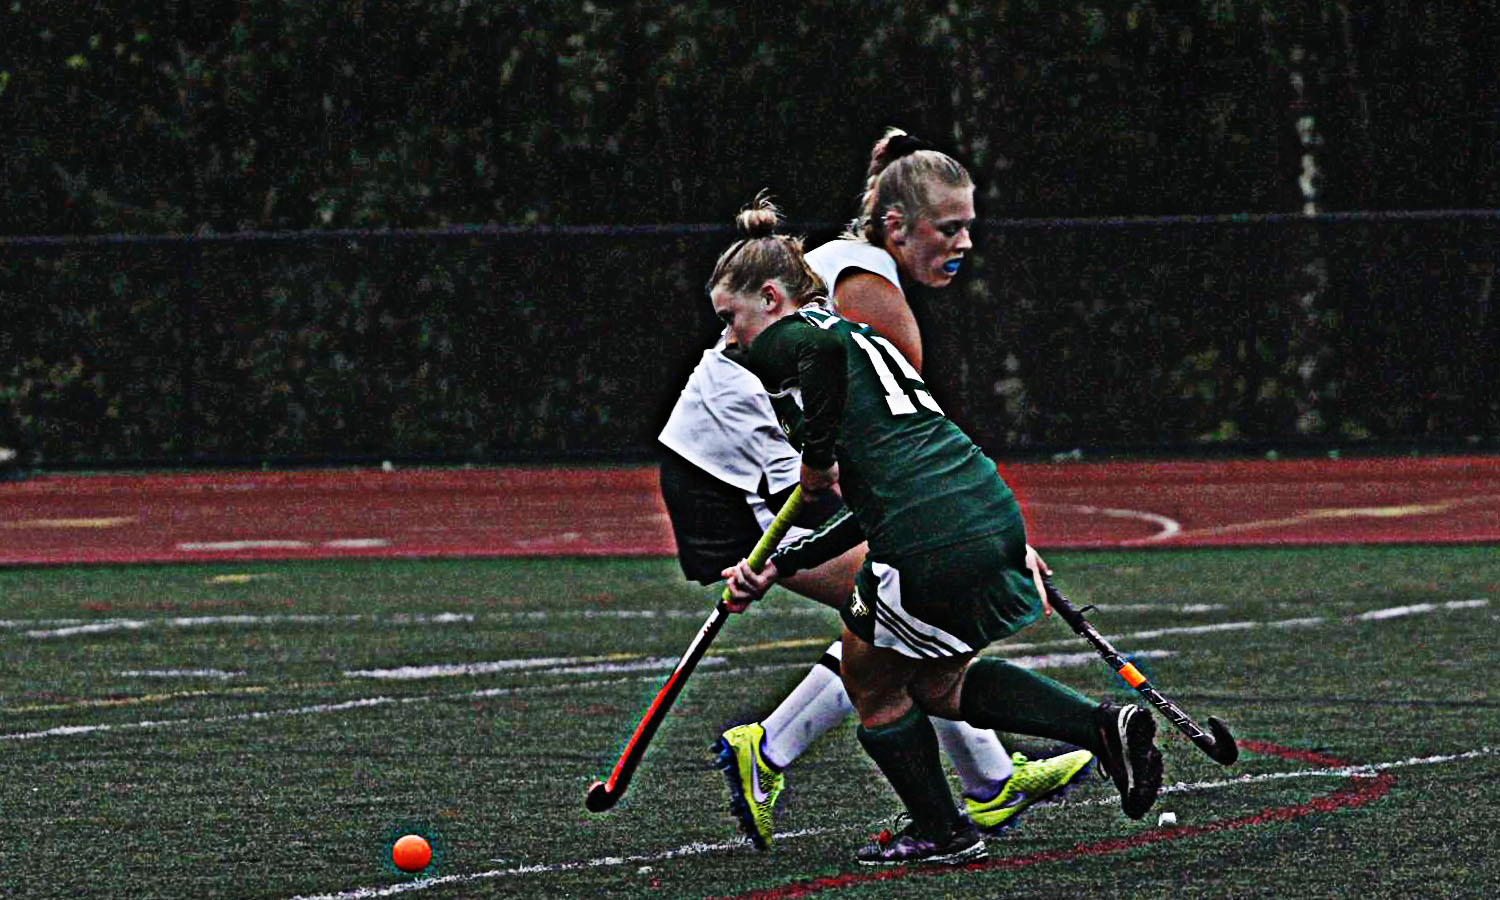 Fitchburg State Rallies Past Western Connecticut State, 2-1 (2 OT)